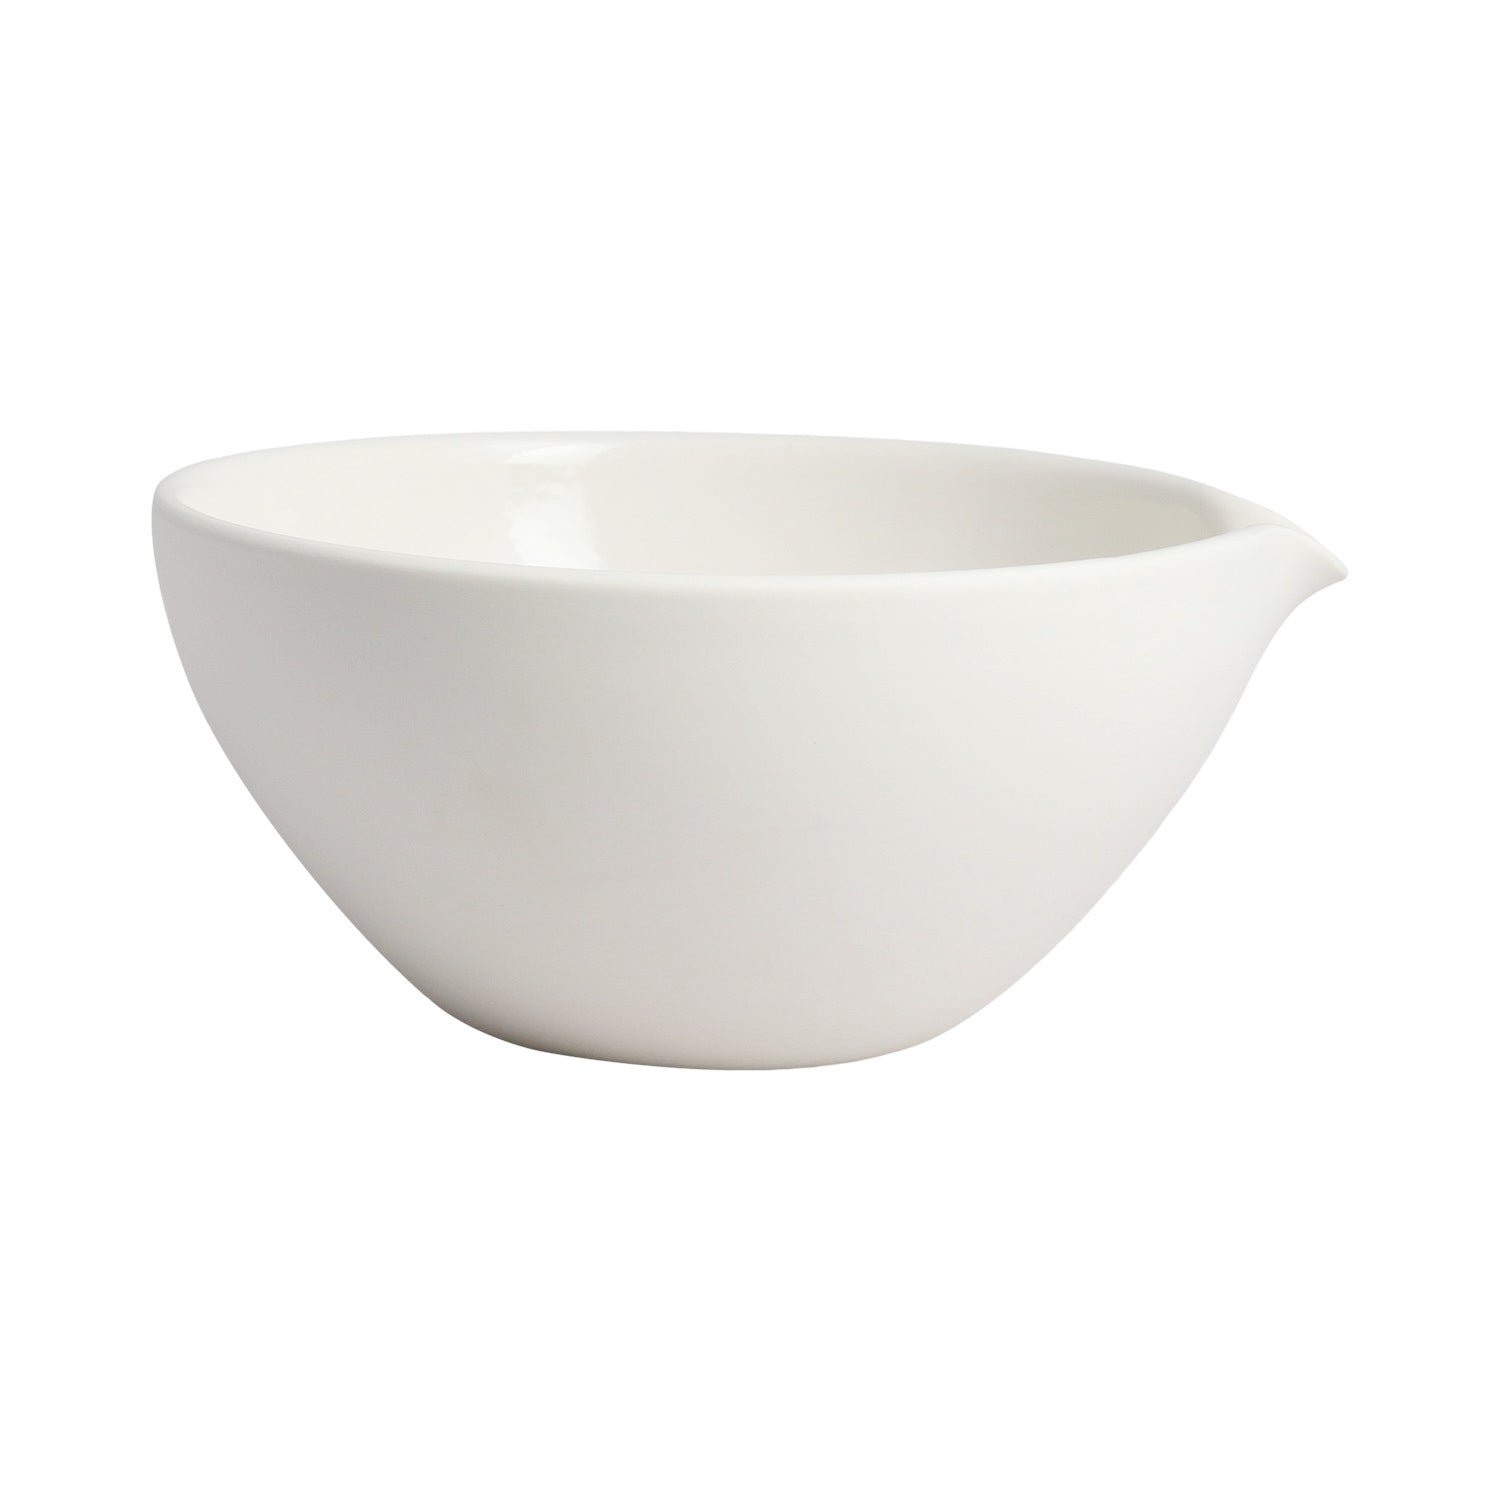 Medium Pouring Bowl - 20cm